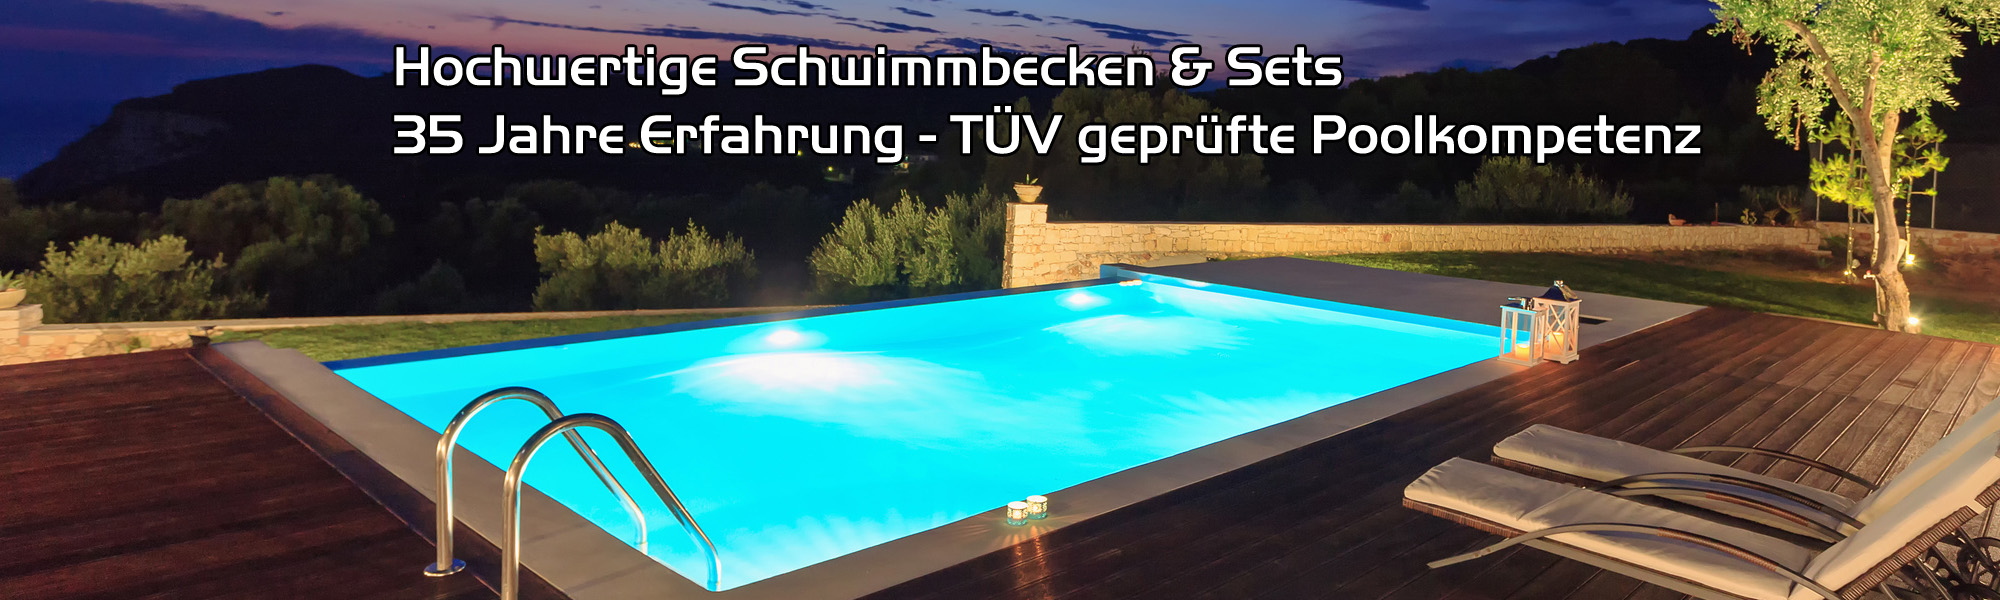 Pool Komplettset Einbau Dewo Team Pooltechnik Pools Günstig Dewo Team Pooltechnik